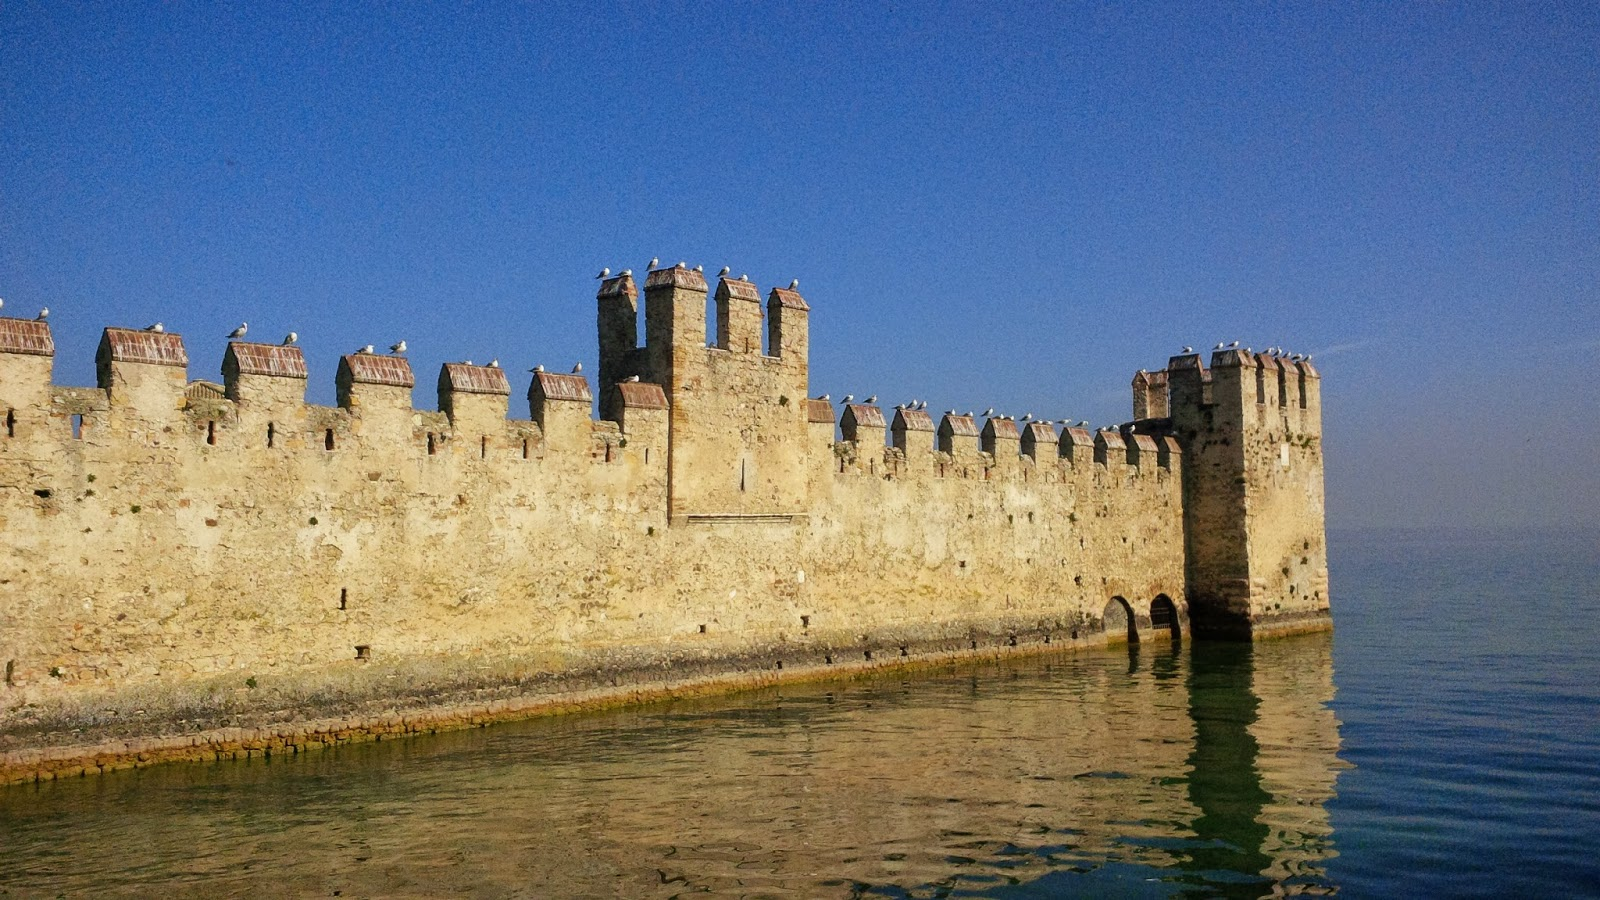 Sirmione's castle extending into lake Garda